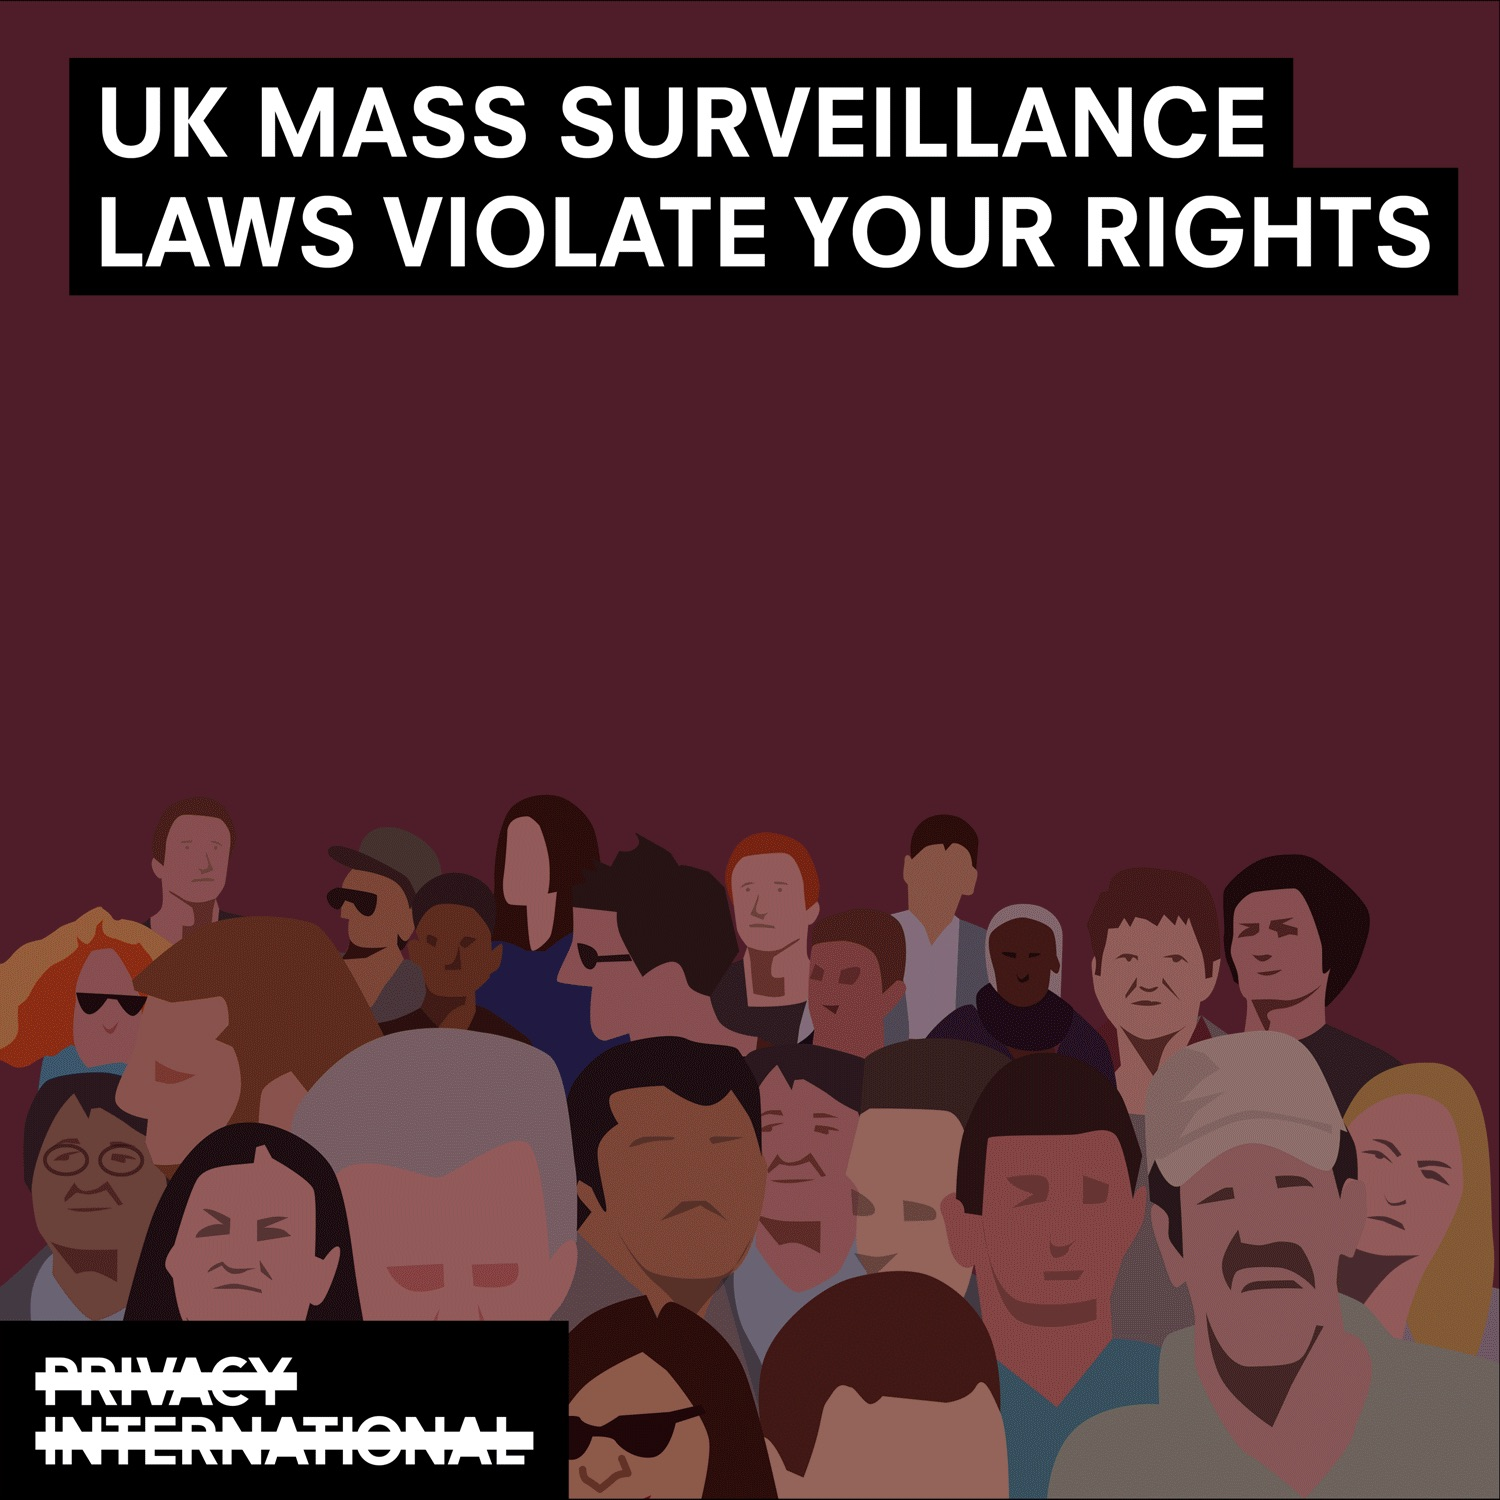 UK mass surveillance violates your rights